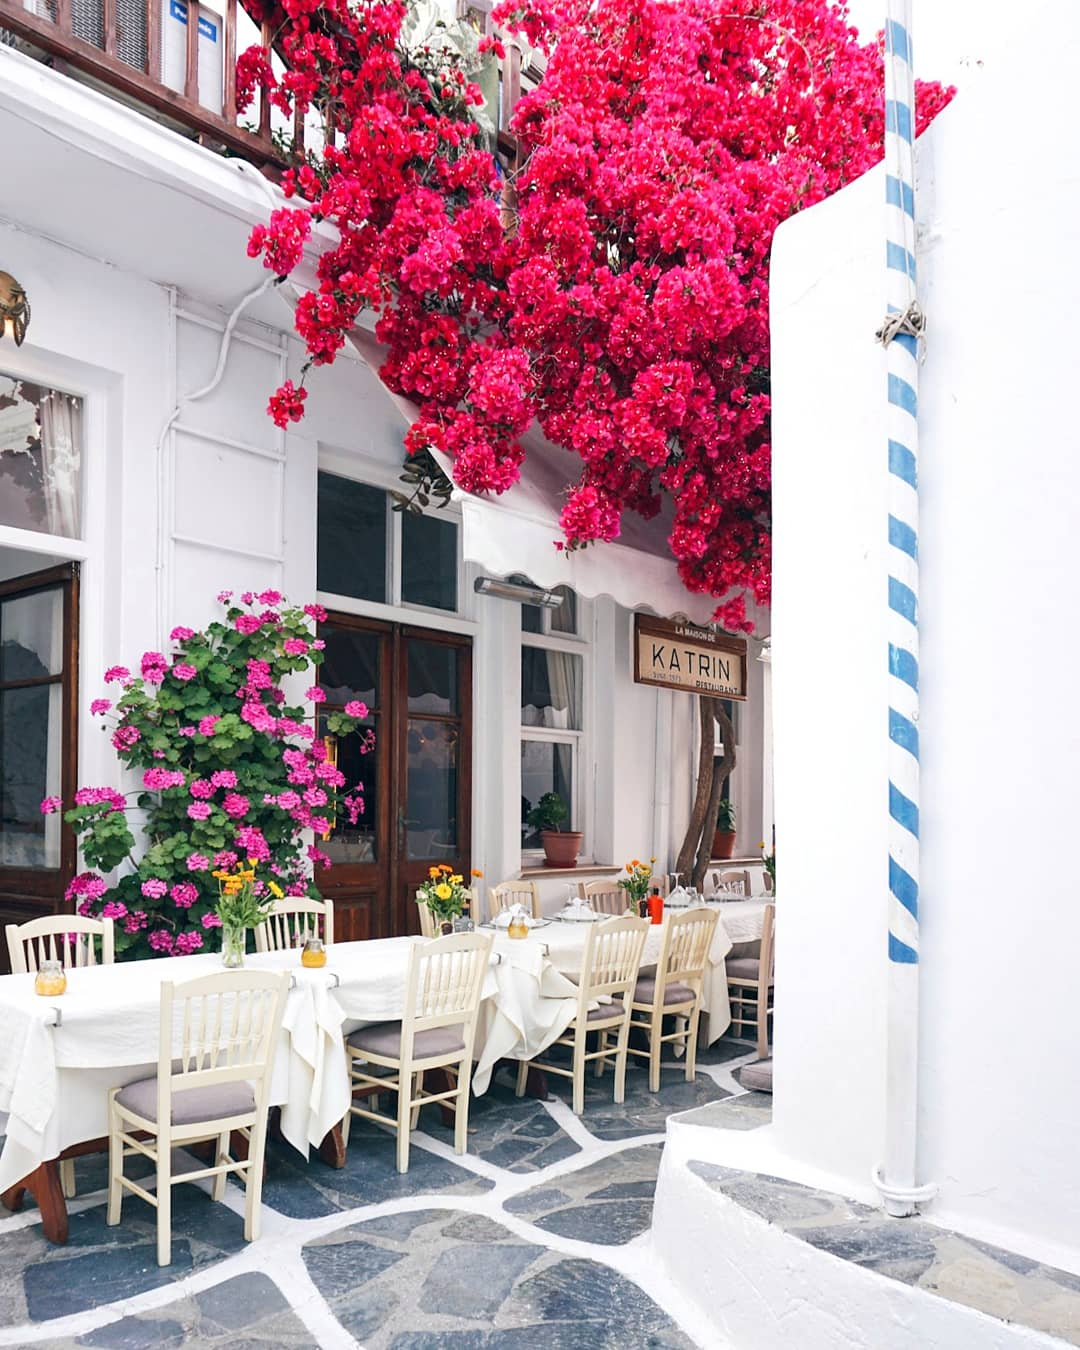 Mykonos in the spring time